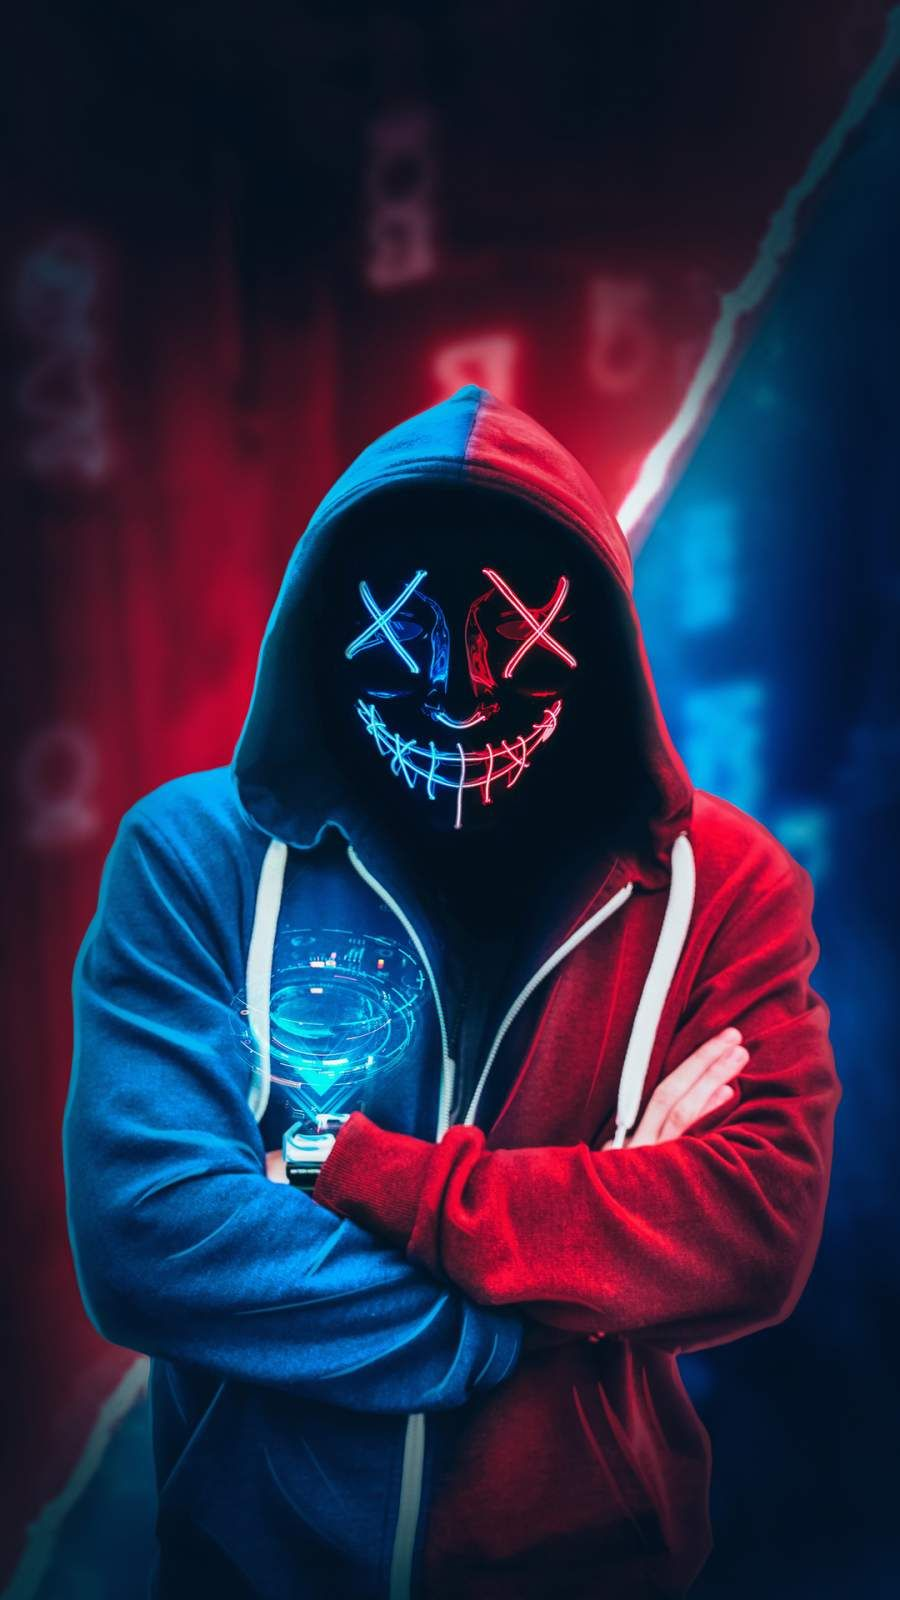 Anonymous Neon Mask Hoodie iPhone Wallpaper Cool